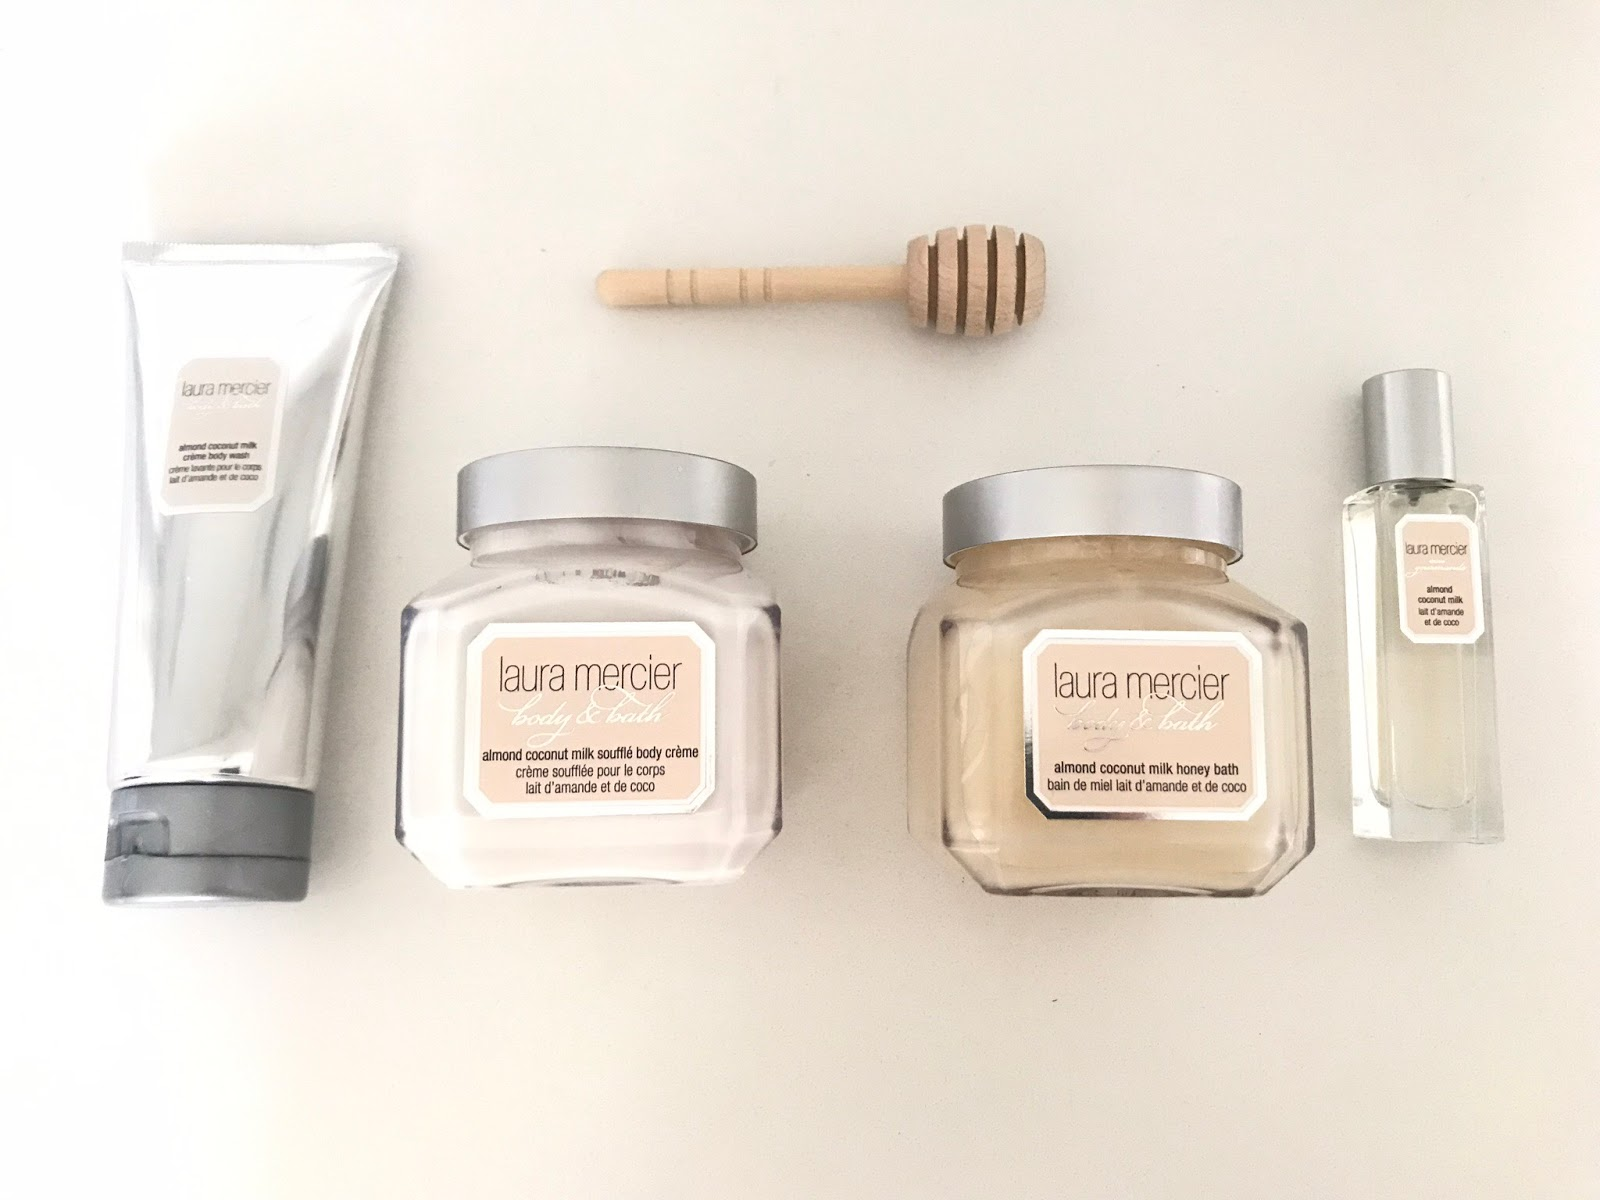 Laura Mercier Almond and Coconut Milk Bath and Body Products